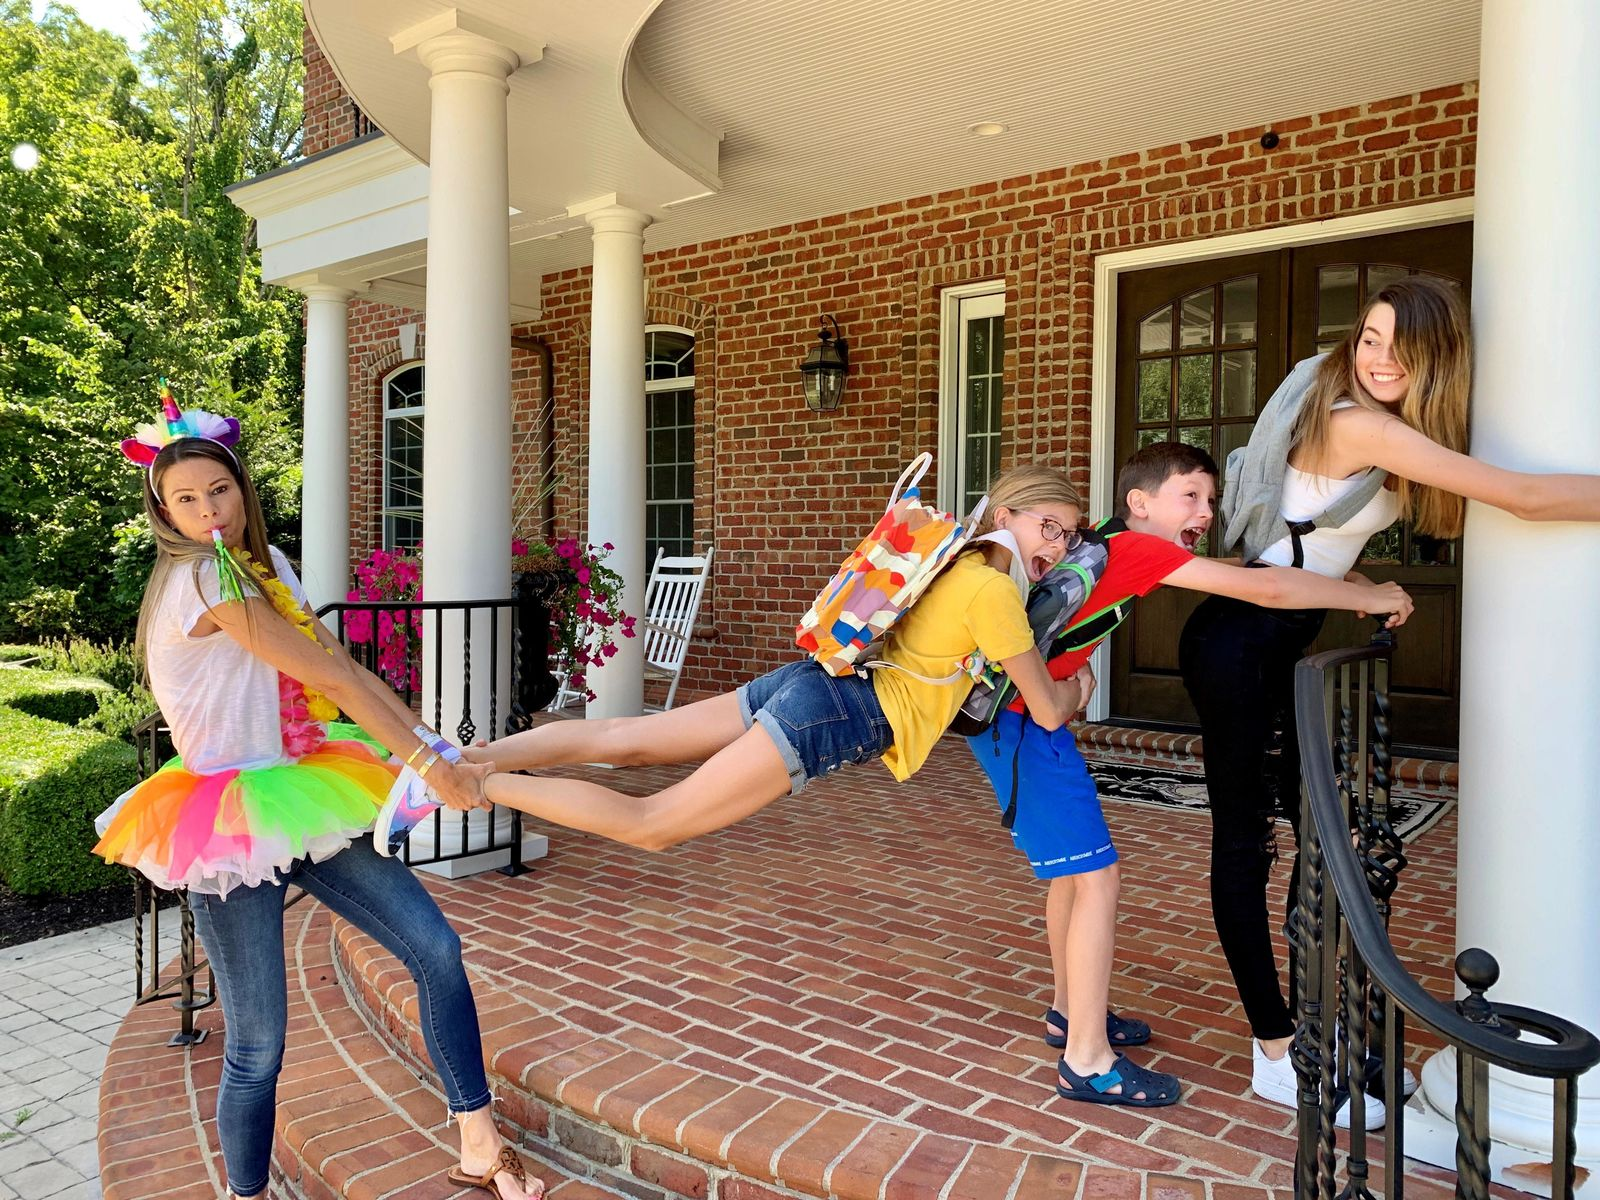 One mom in Central Ohio is getting national recognition for her hilarious back to school photos that show her celebrating the new school year. (Courtesy: Leslie Kemelgor){ }